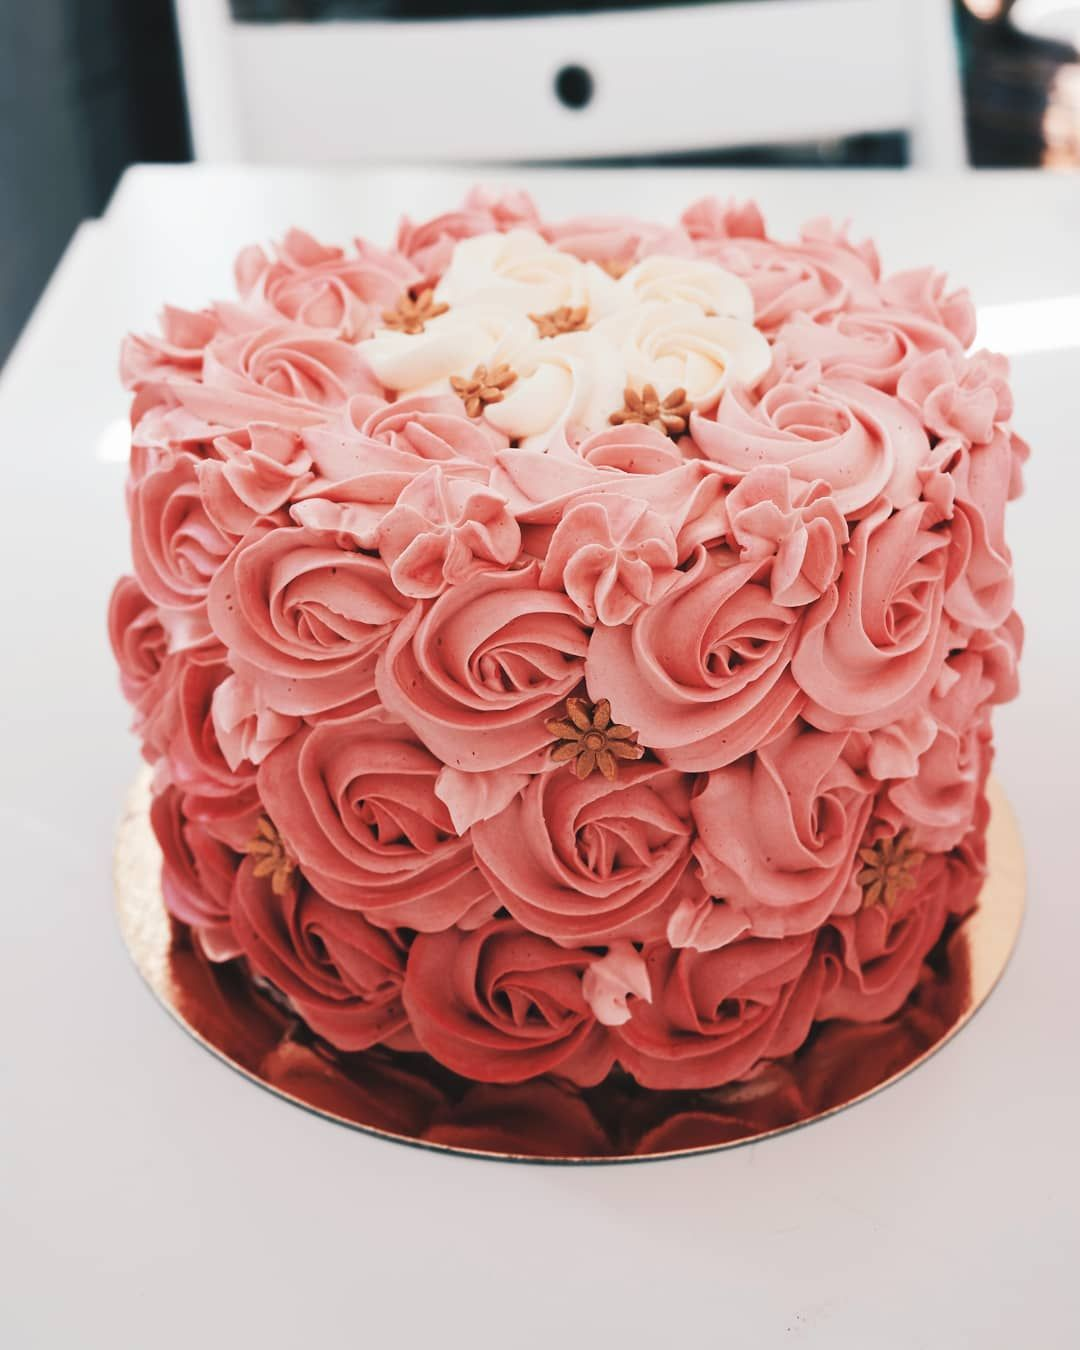 Degrade Pink Rosette Cake Made With Swiss Meringue Buttercream Simple Cake Designs Easy Cake Decorating Rose Cake Design